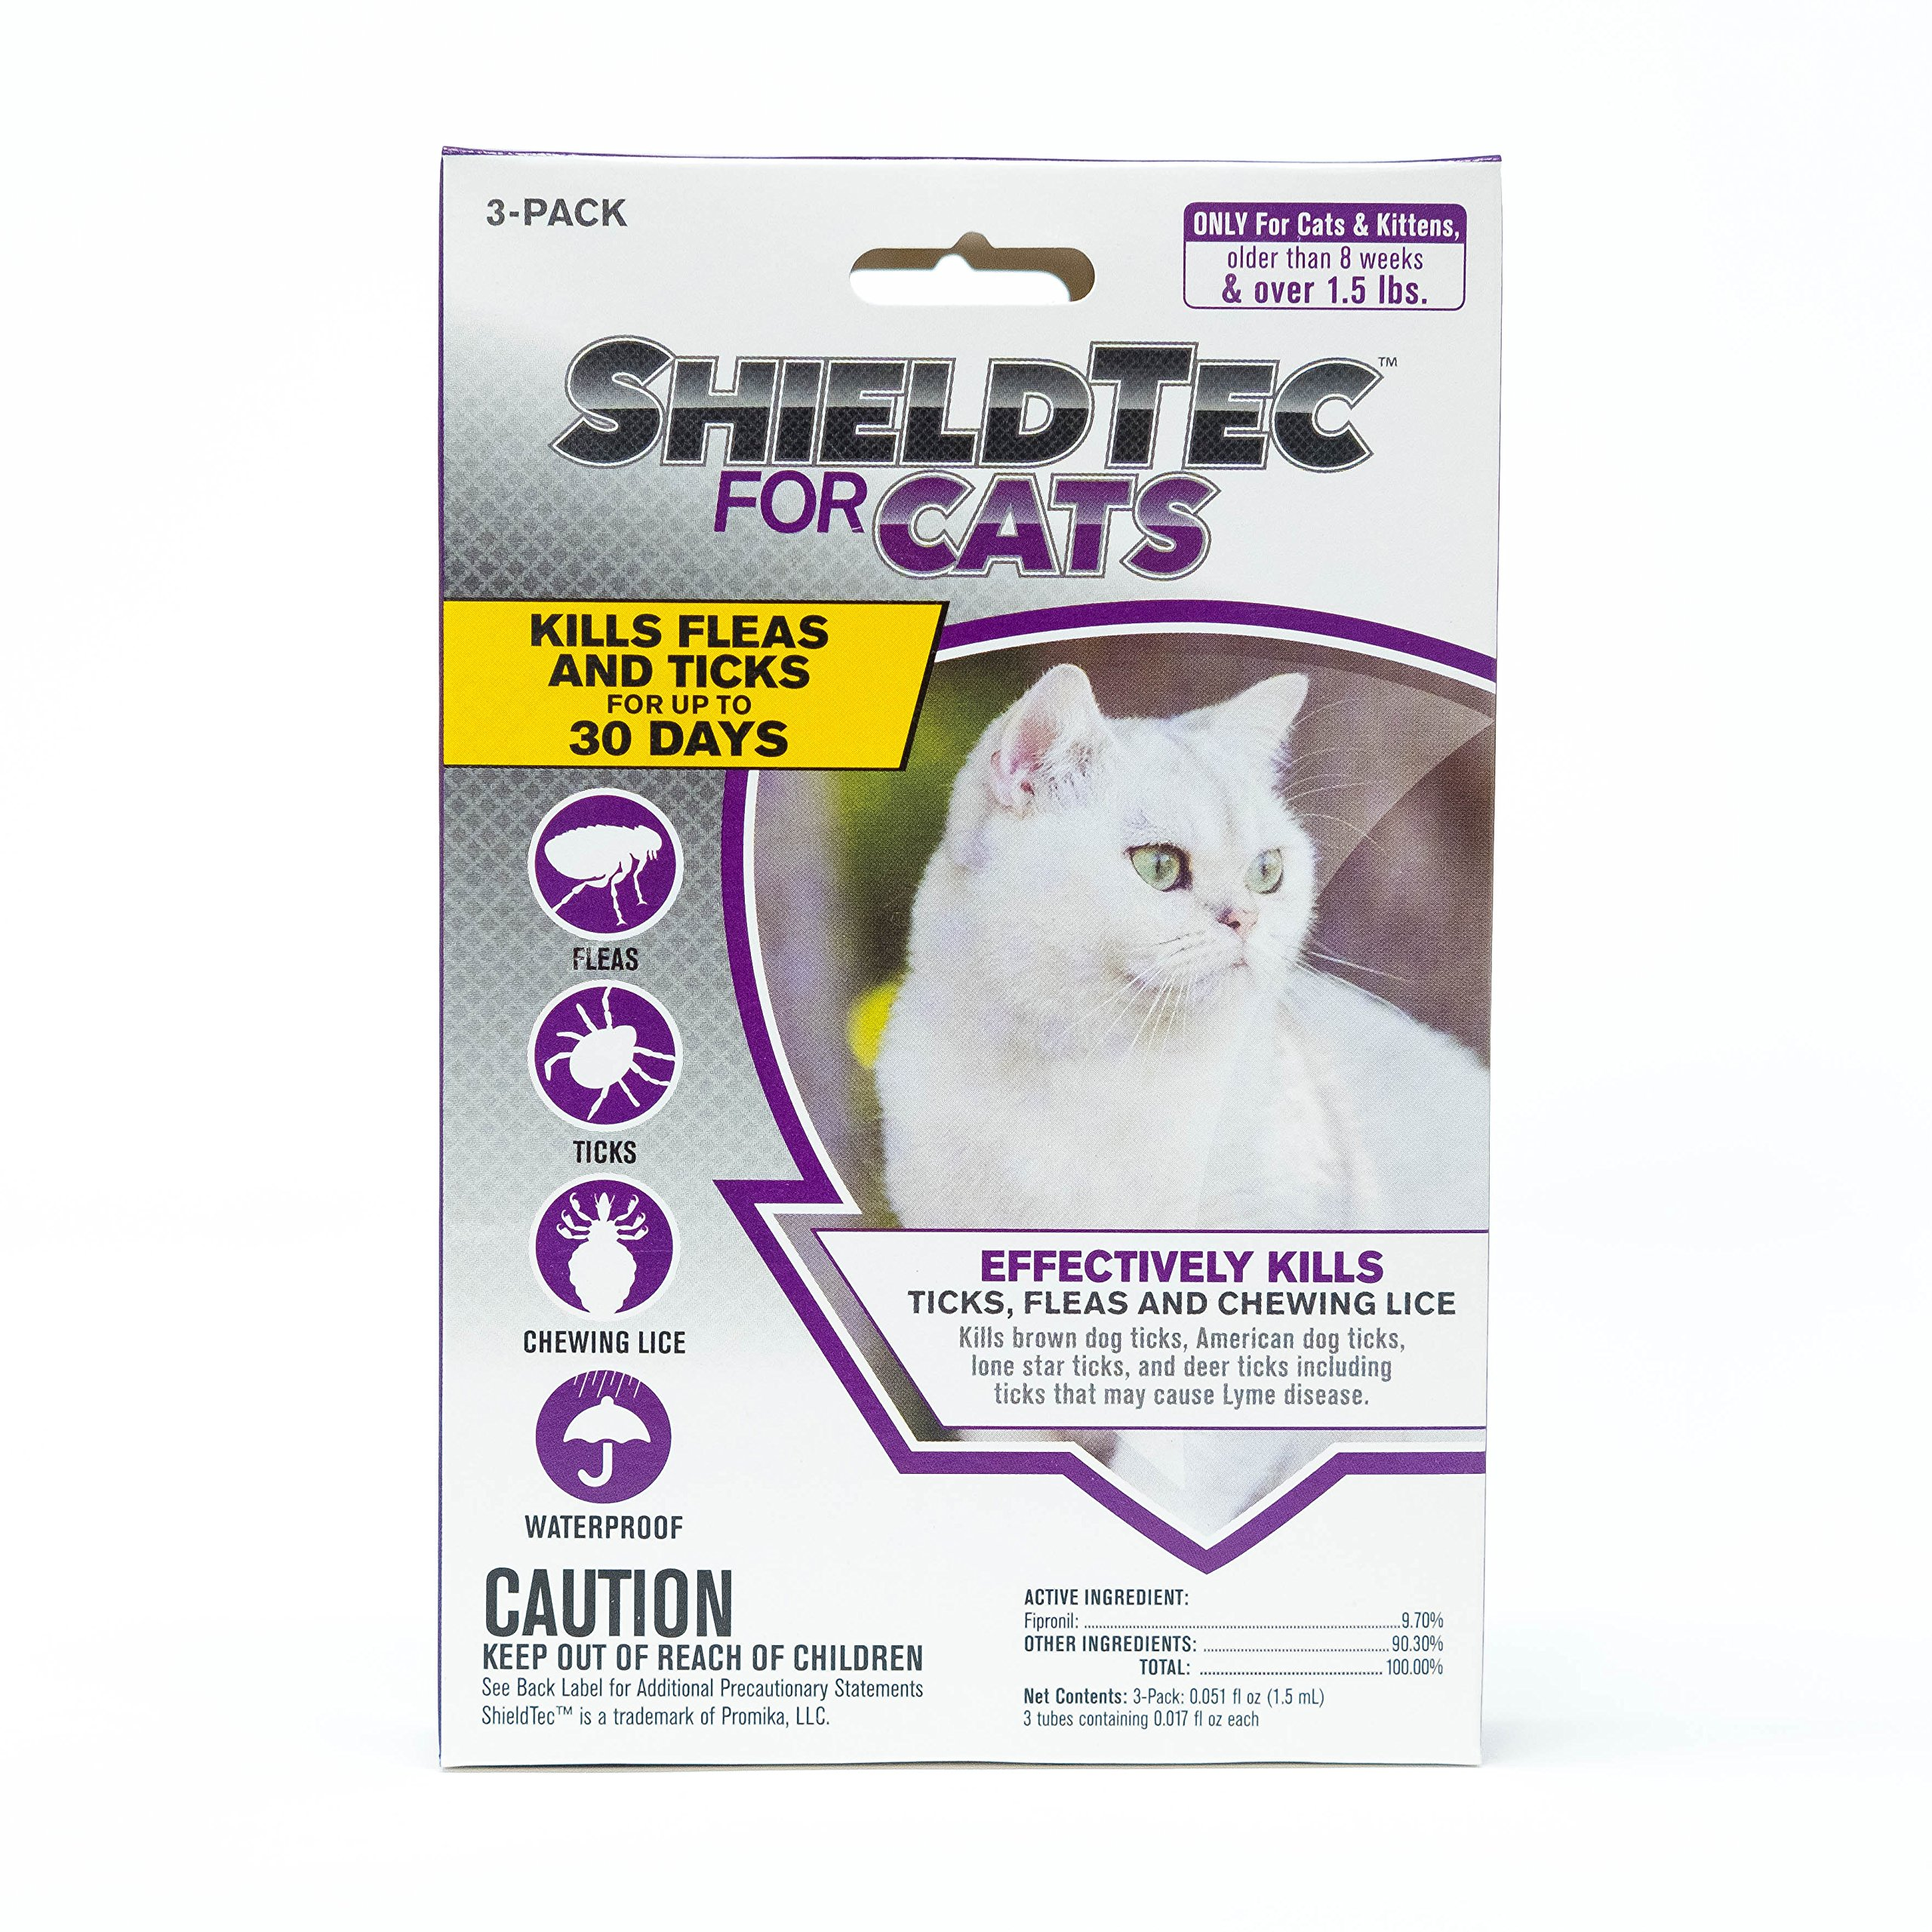 ShieldTec Flea Tick and Lice Prevention for Cats,3 Months Protection, Over 1.5 lbs